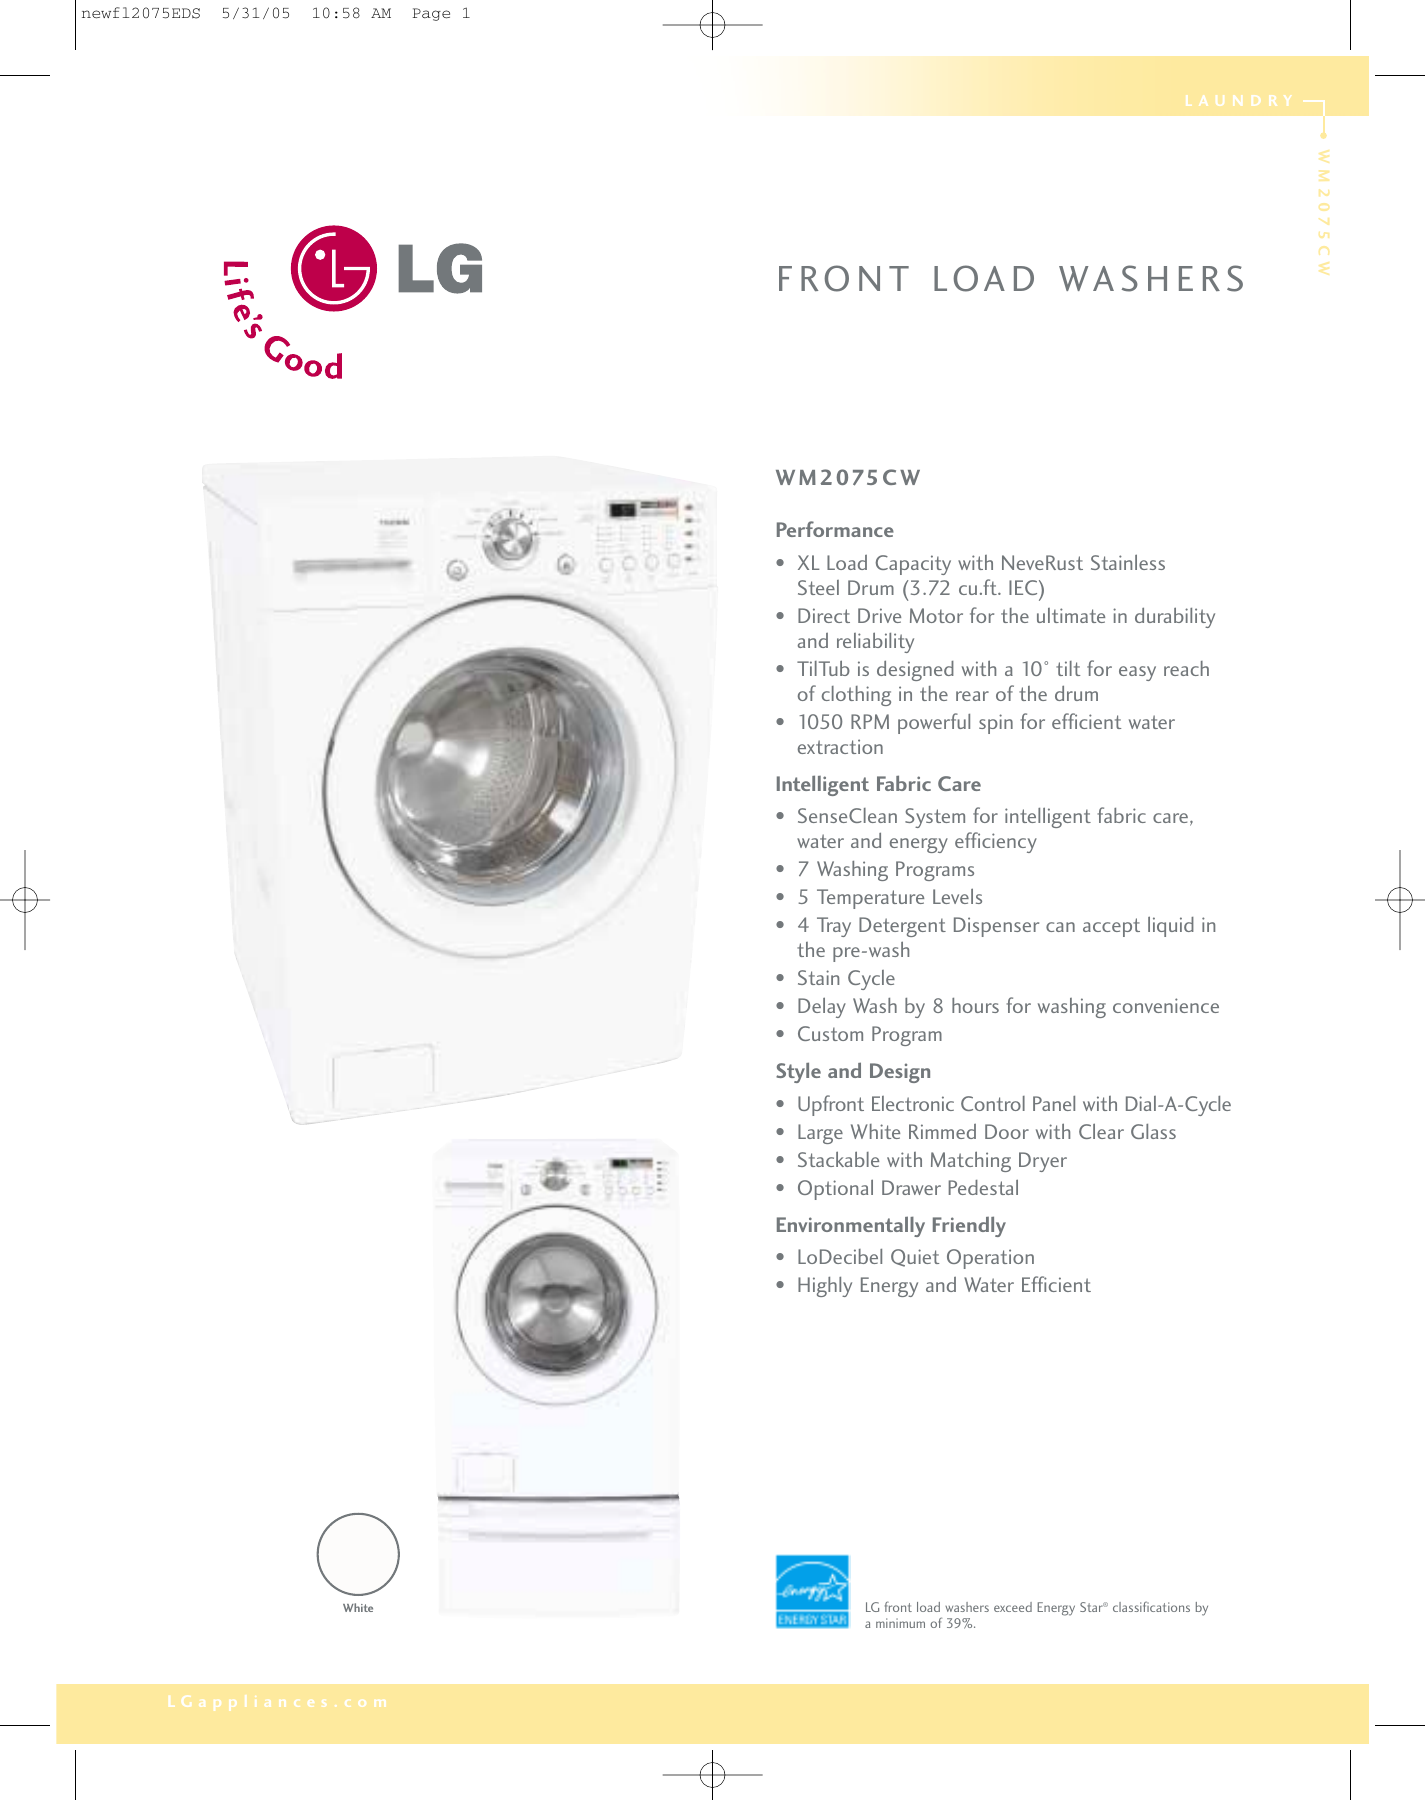 lg wm2075cw users manual rh usermanual wiki LG Front Load Washer Manual LG Tromm Washer Capacity